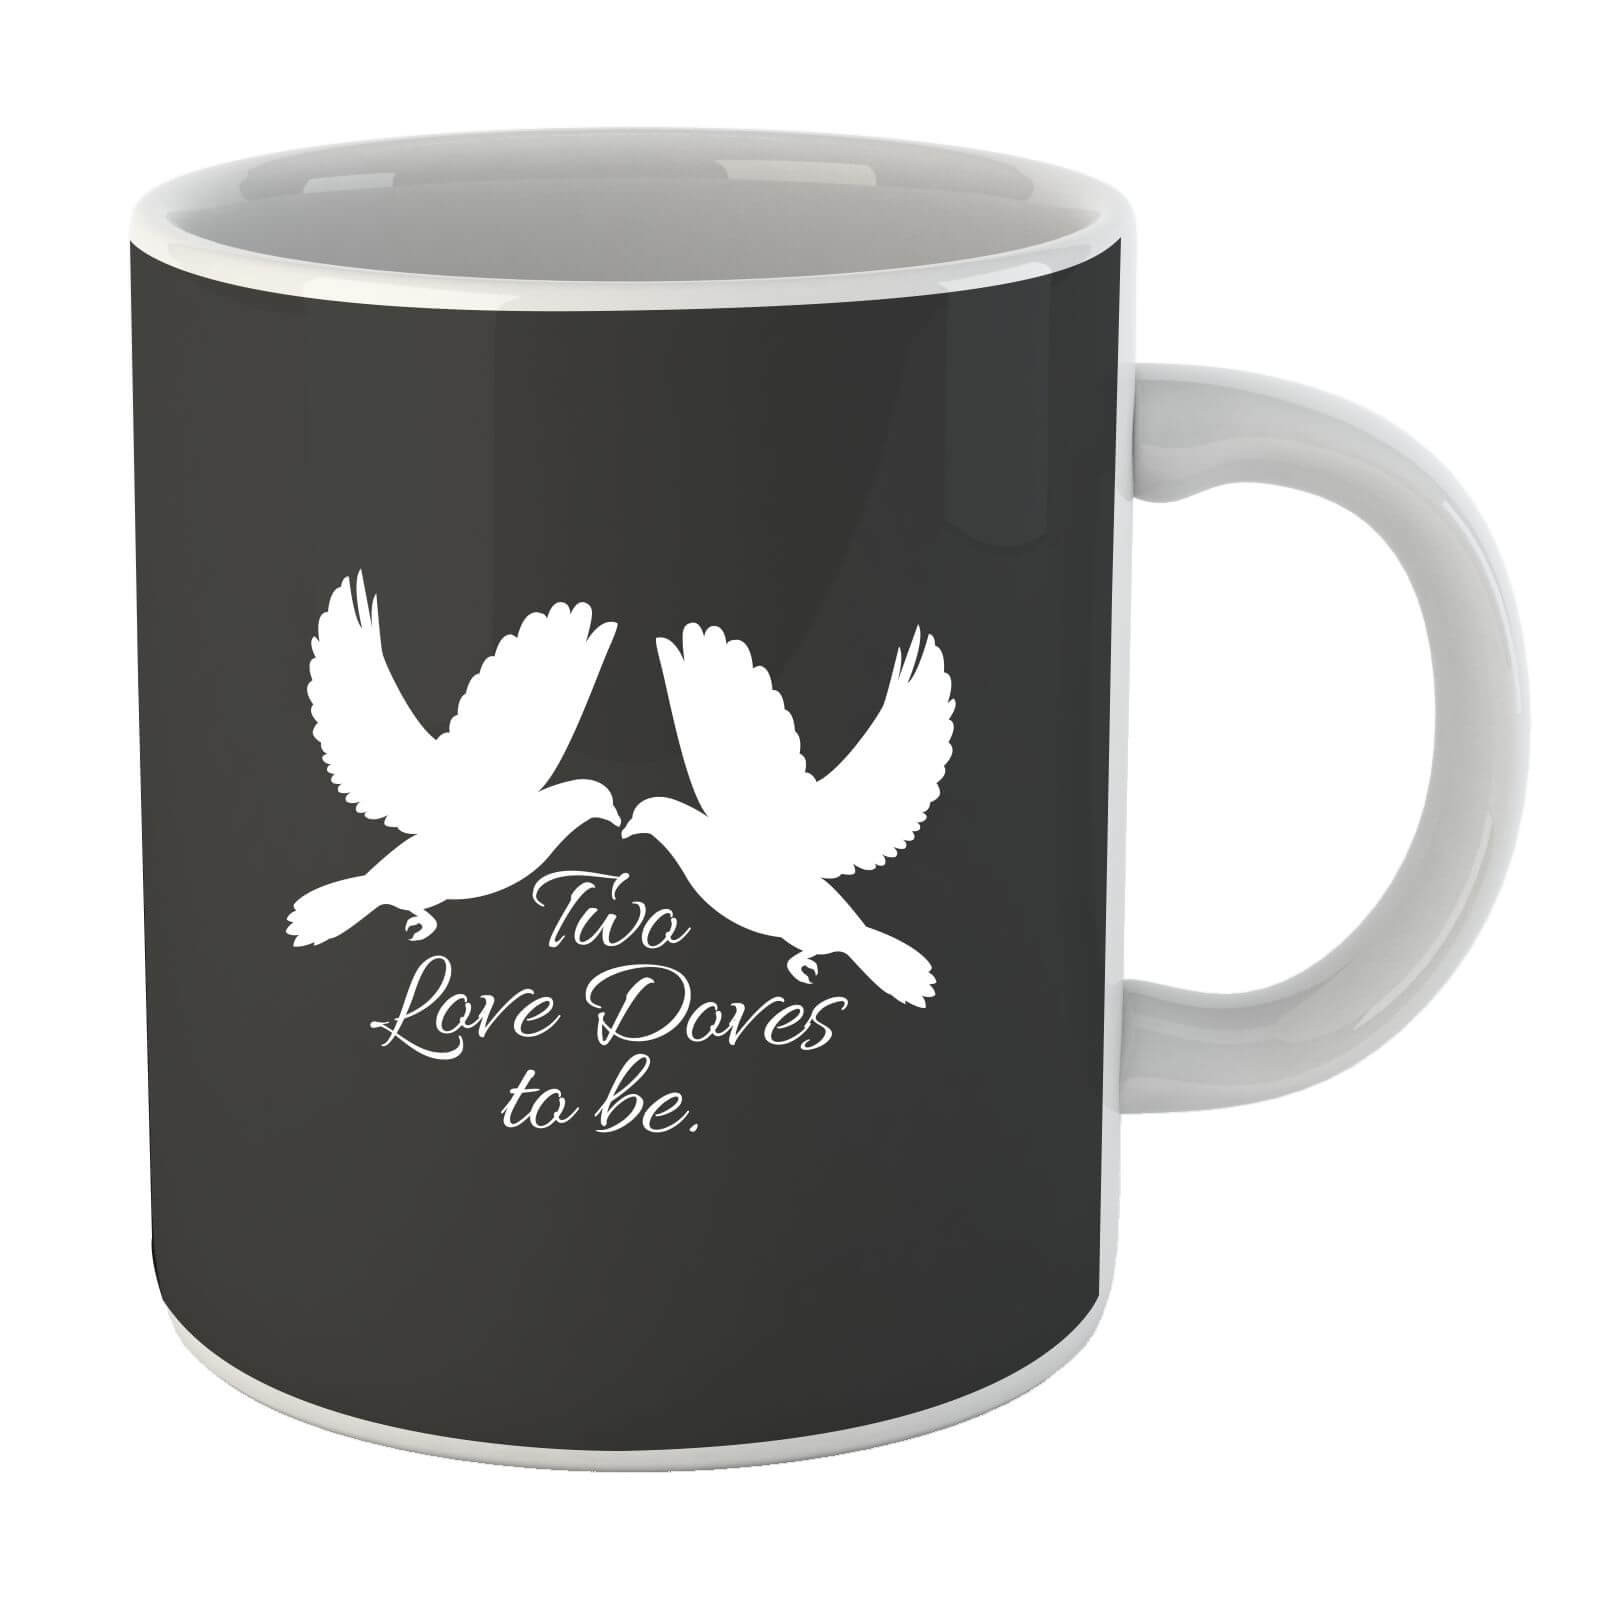 Two Love Doves Mug